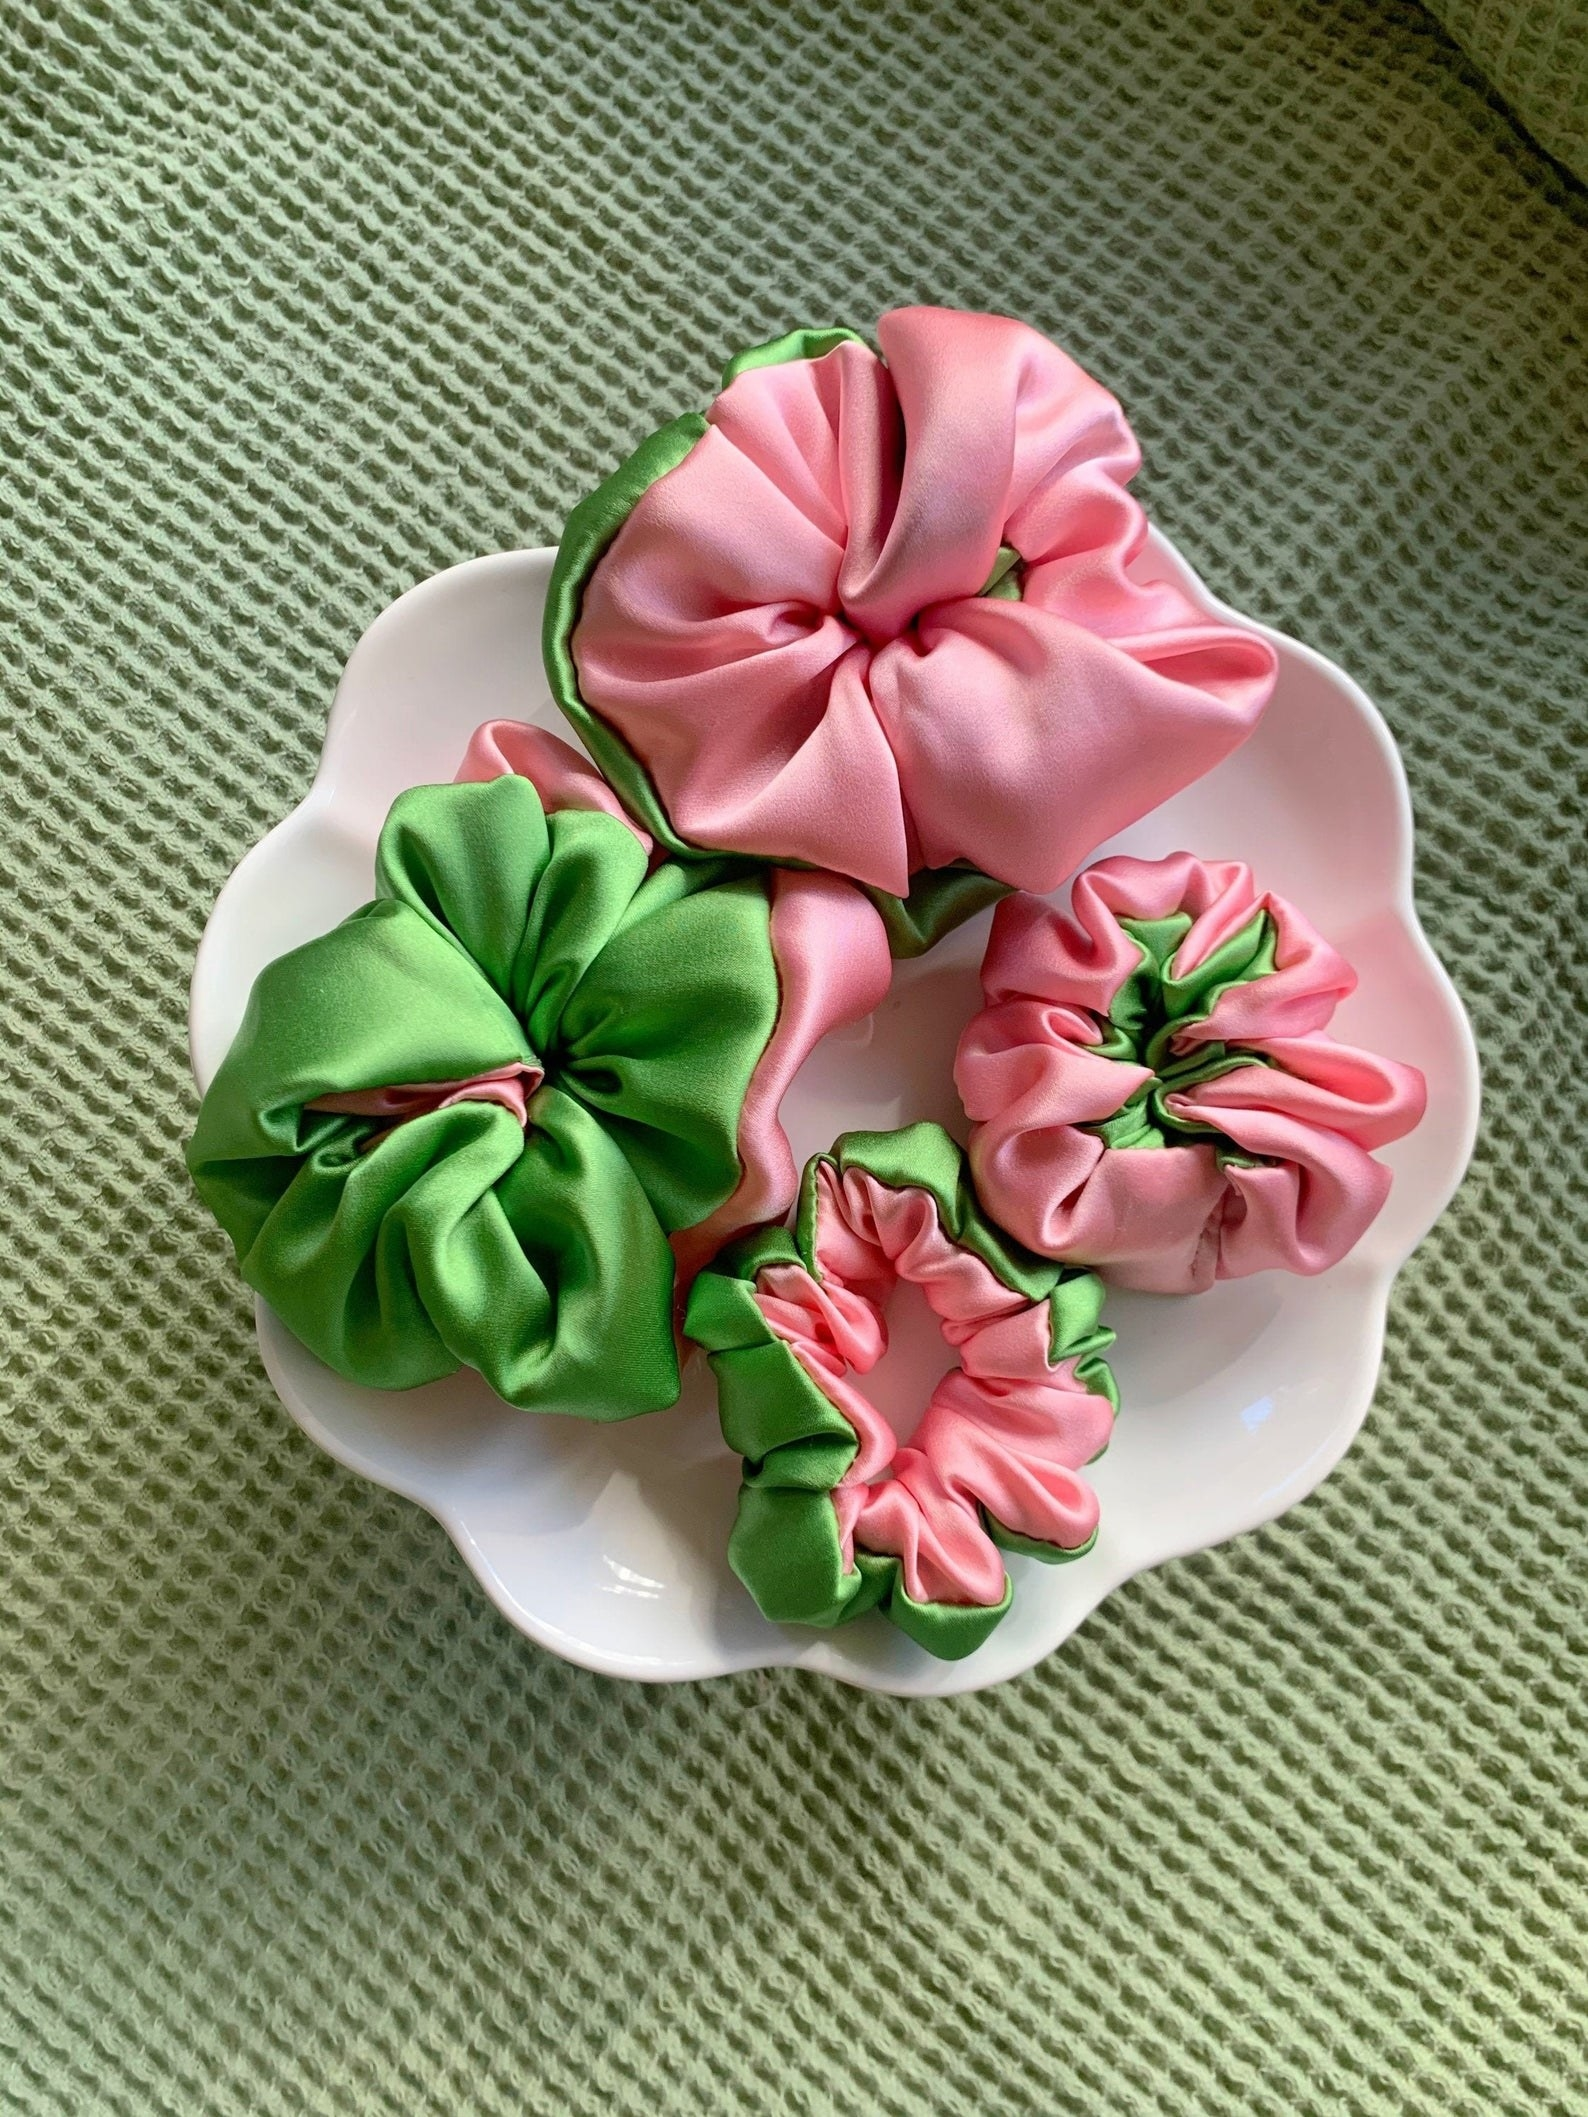 pink and green scrunchies in a bowl